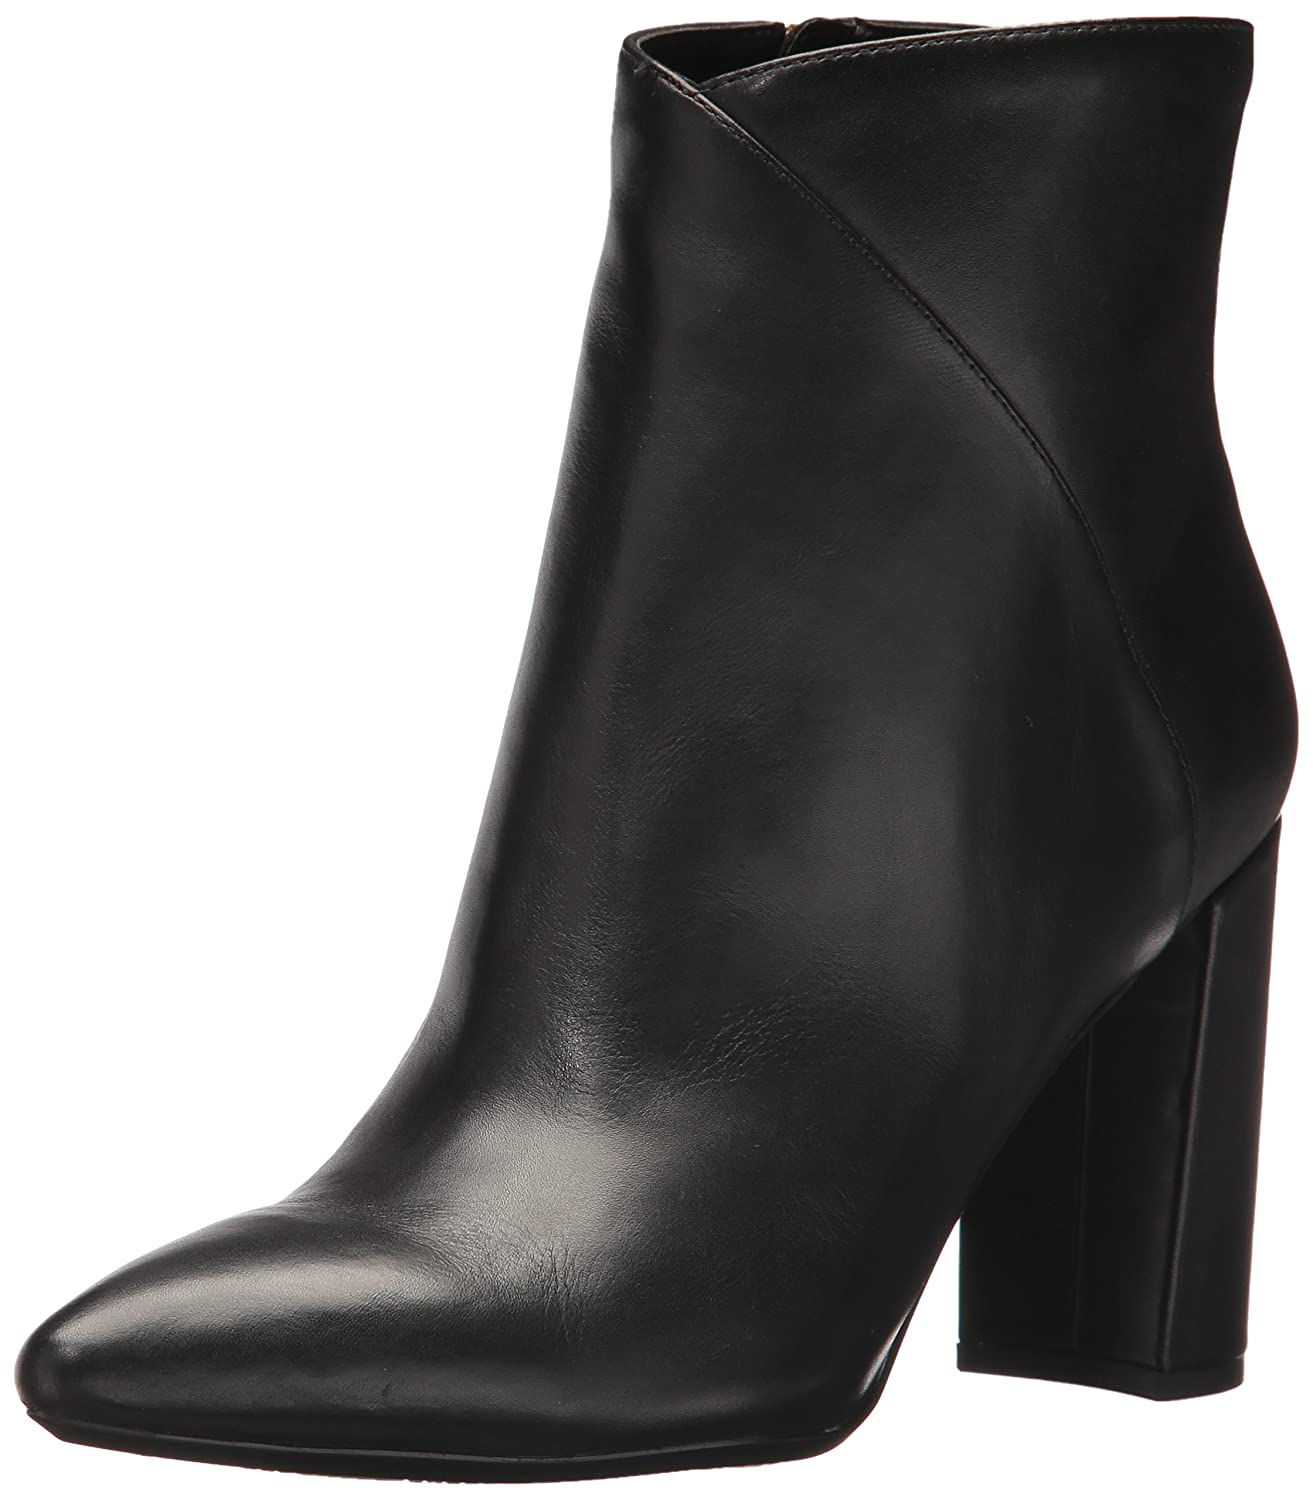 Nine West Women's Argyle Ankle Boot B06X919V2N 8.5 B(M) US|Black Leather